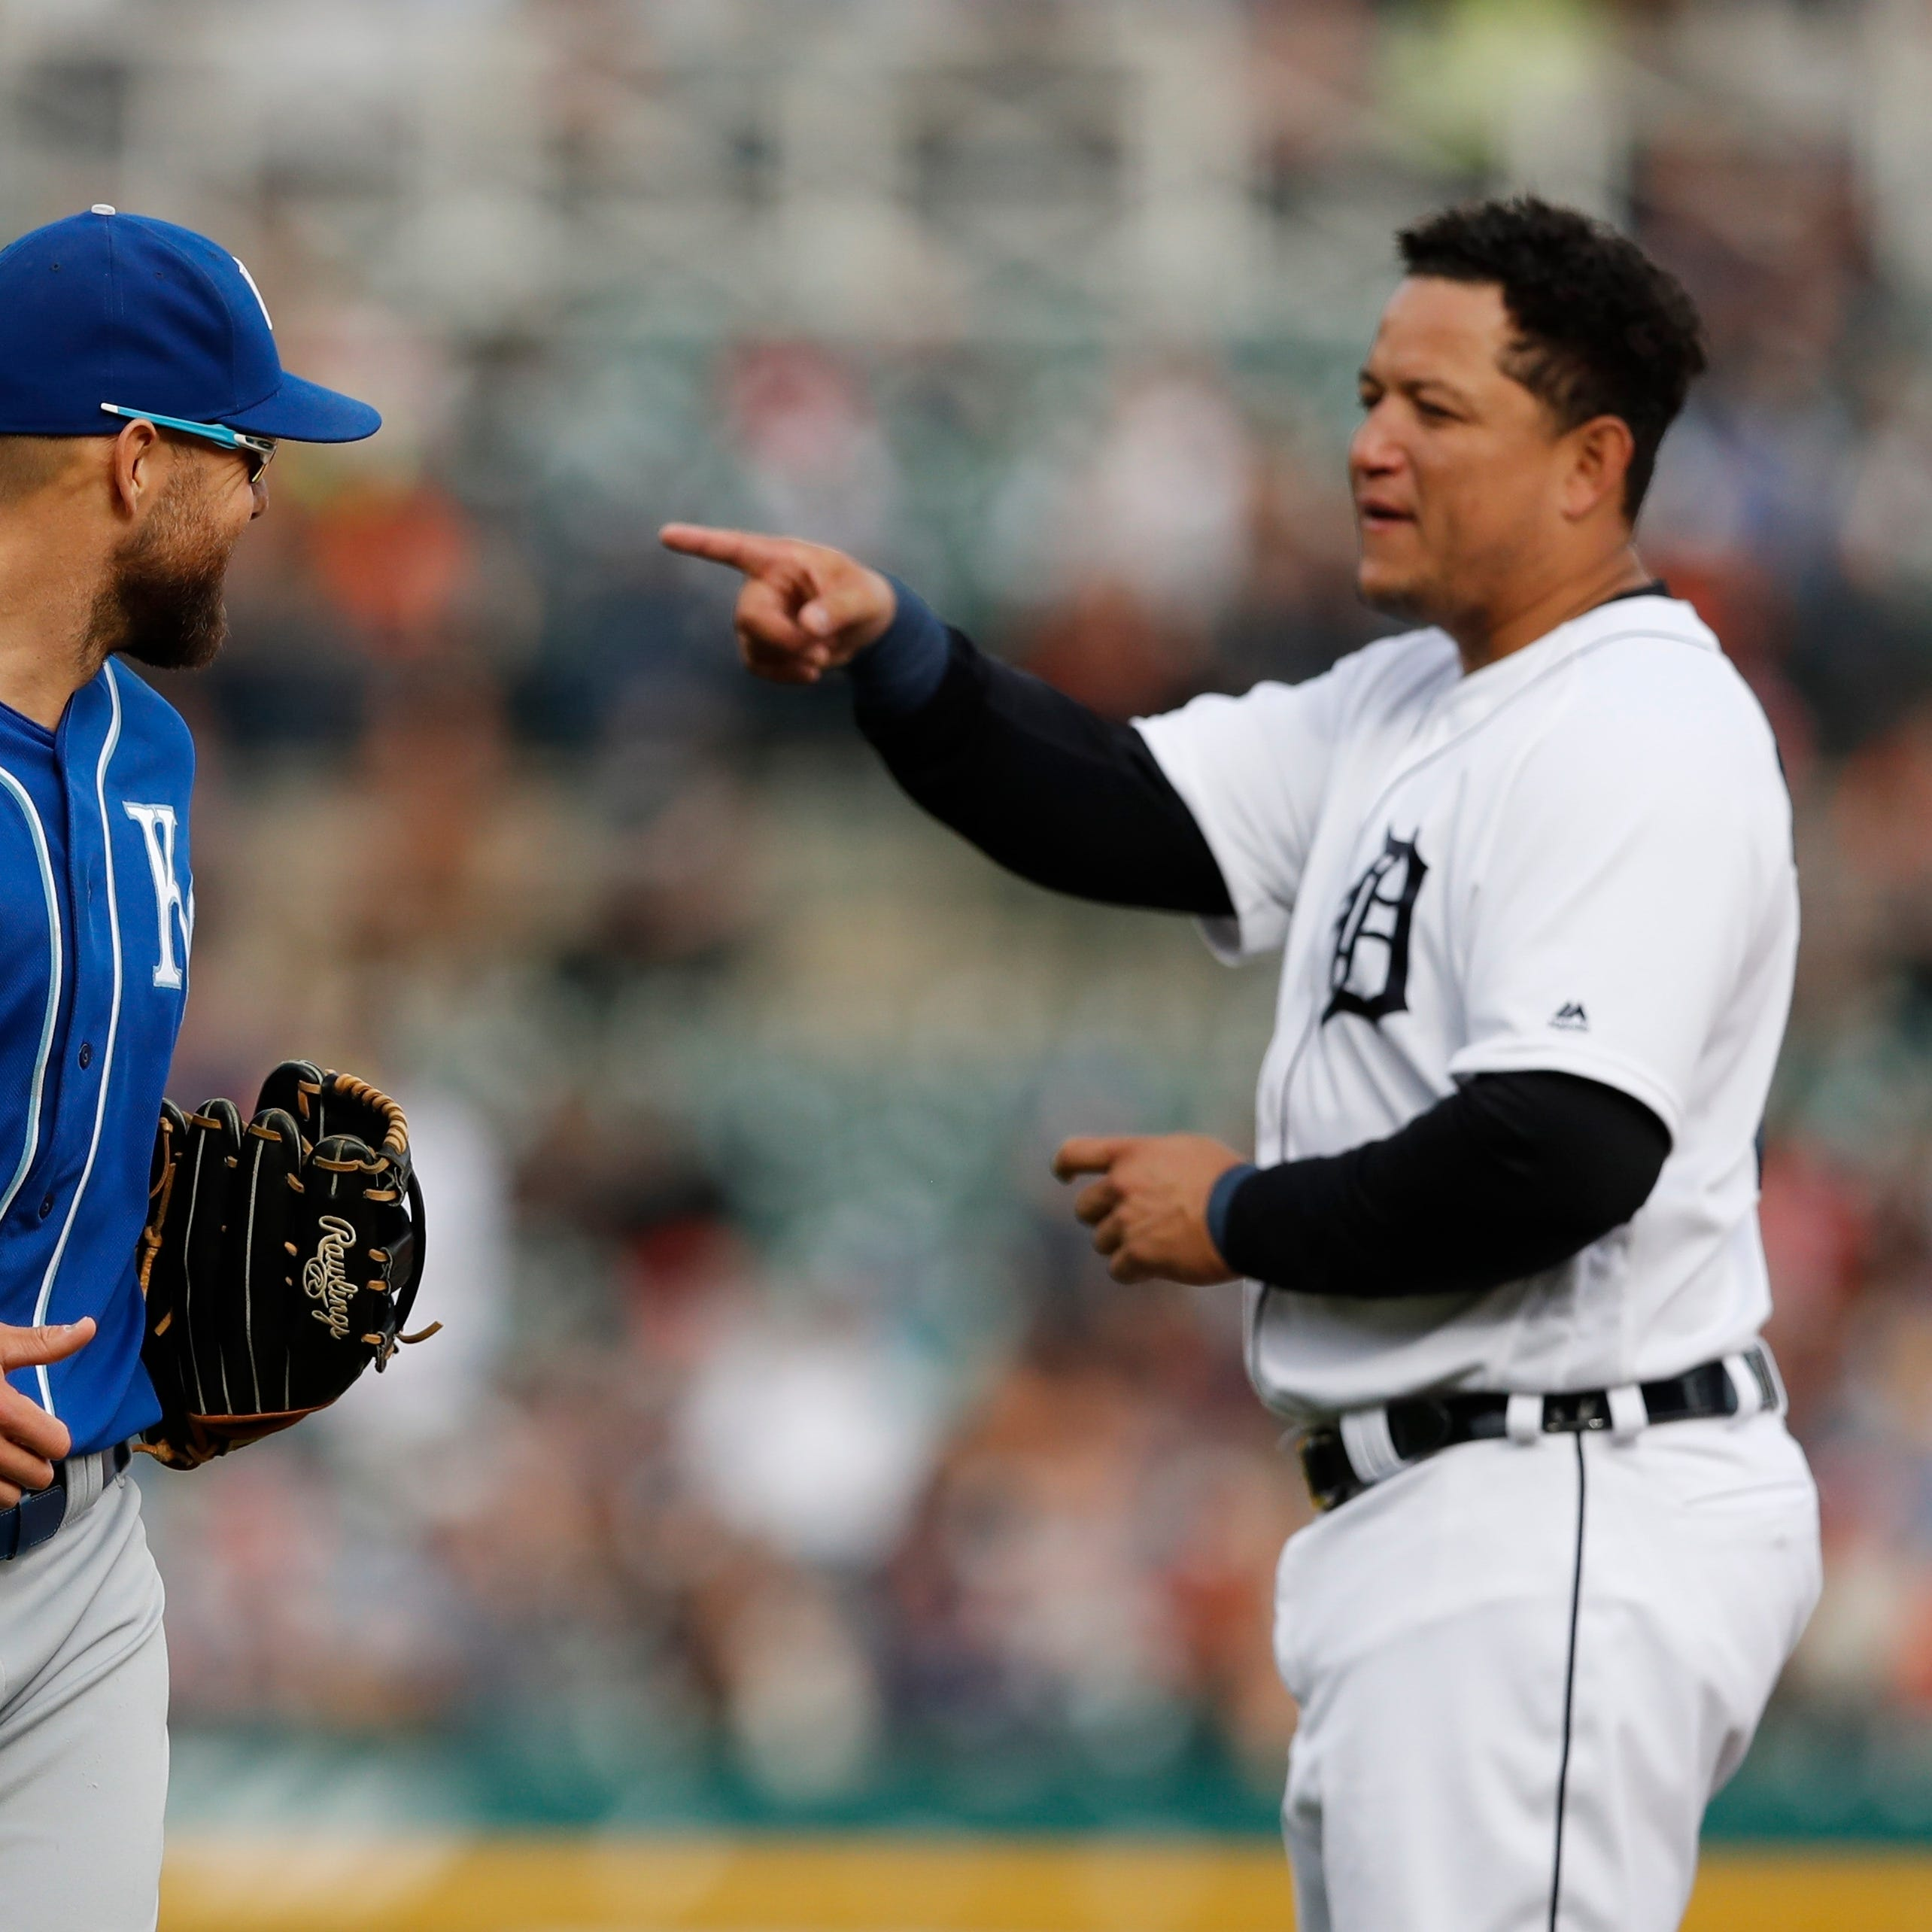 Crying shame: Tigers pitchers walk 10 and take a Royal beating, 15-3